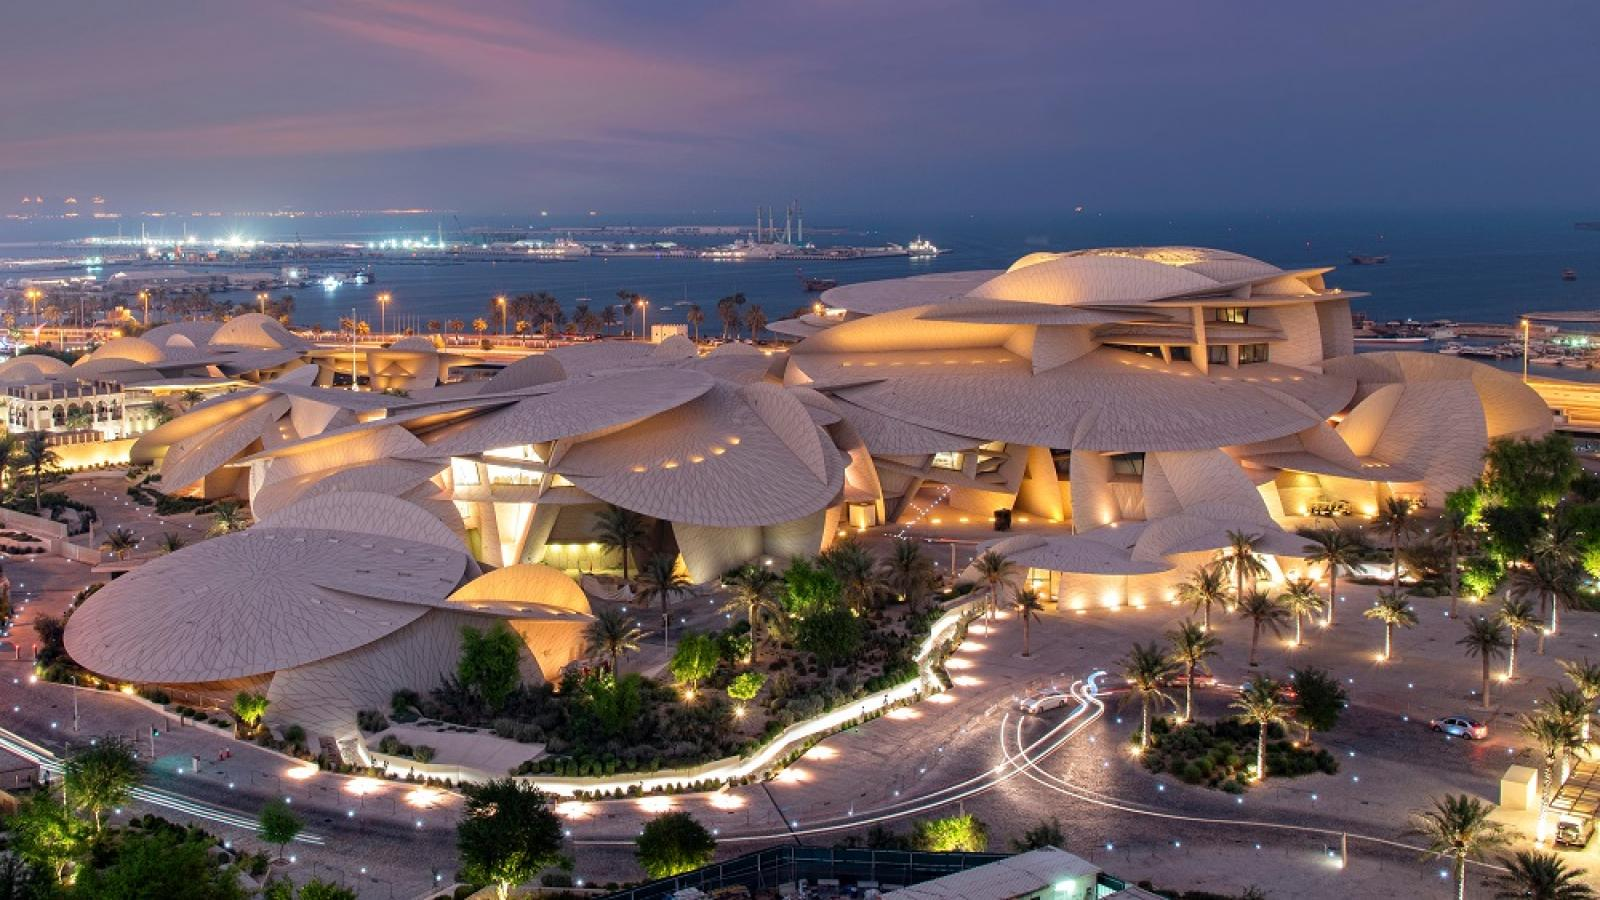 Qatar Museums announces a series of activities for March